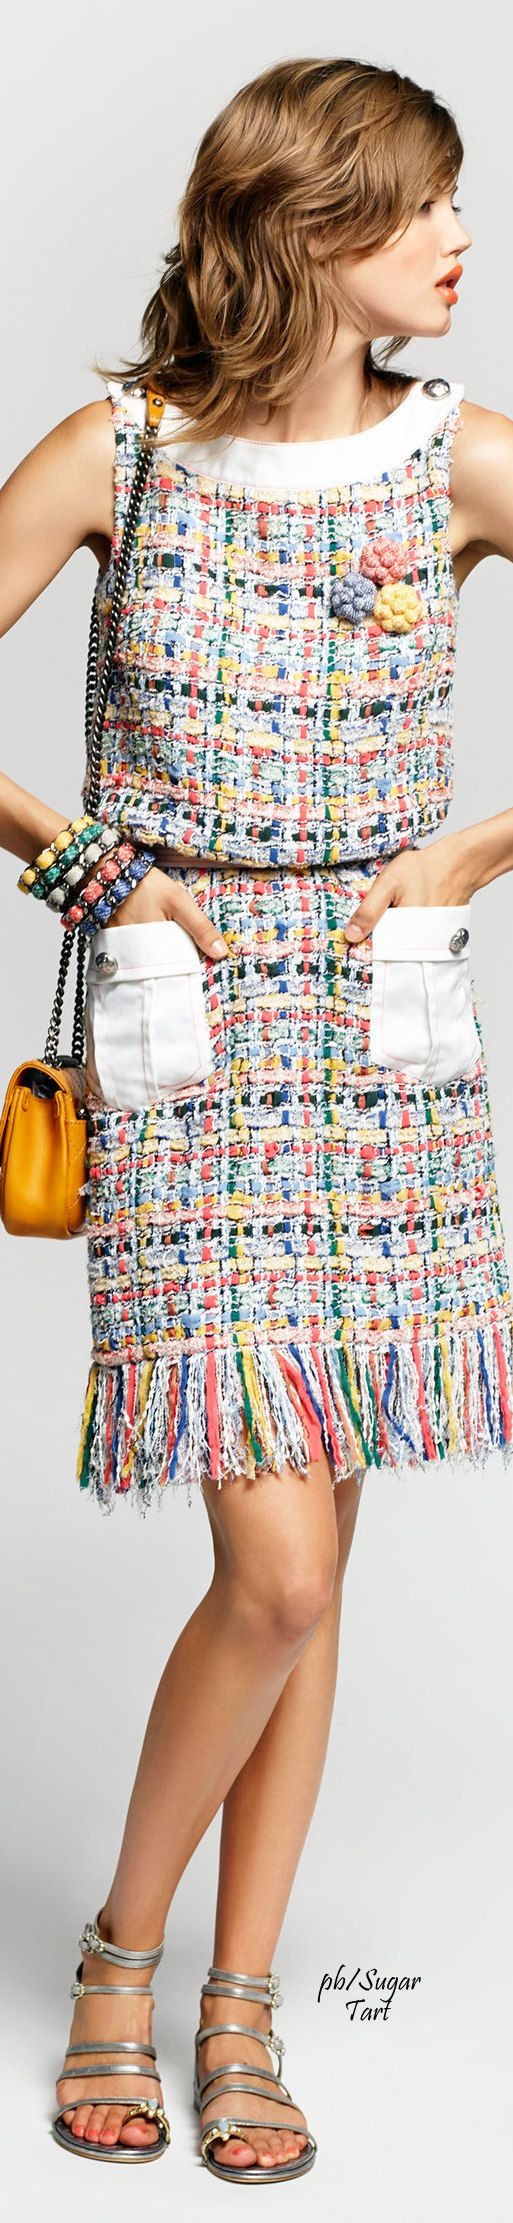 Chanel S/S 2015                                                                                                                                                                                 More